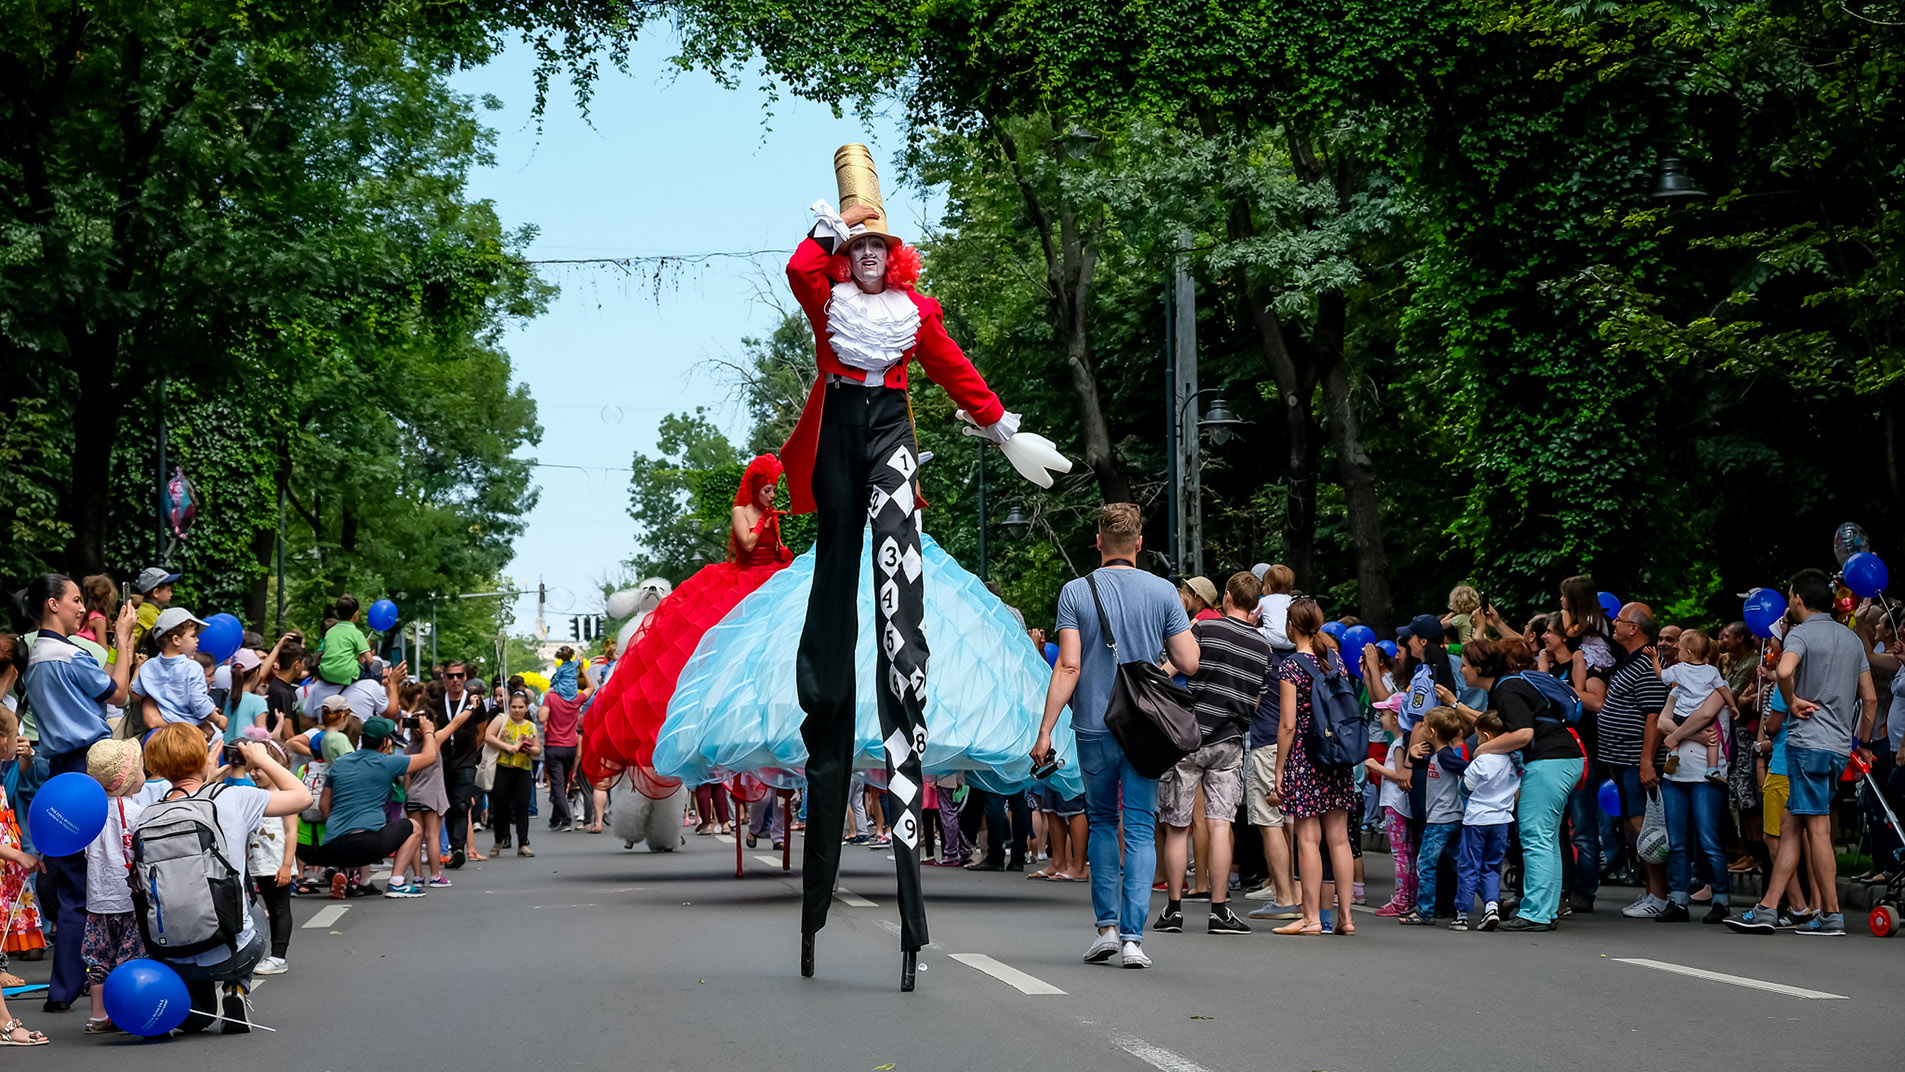 Stelzenläufer bei Strassentheater Festival in Bukarest / stilts walk act at streettheater festival in bucharest